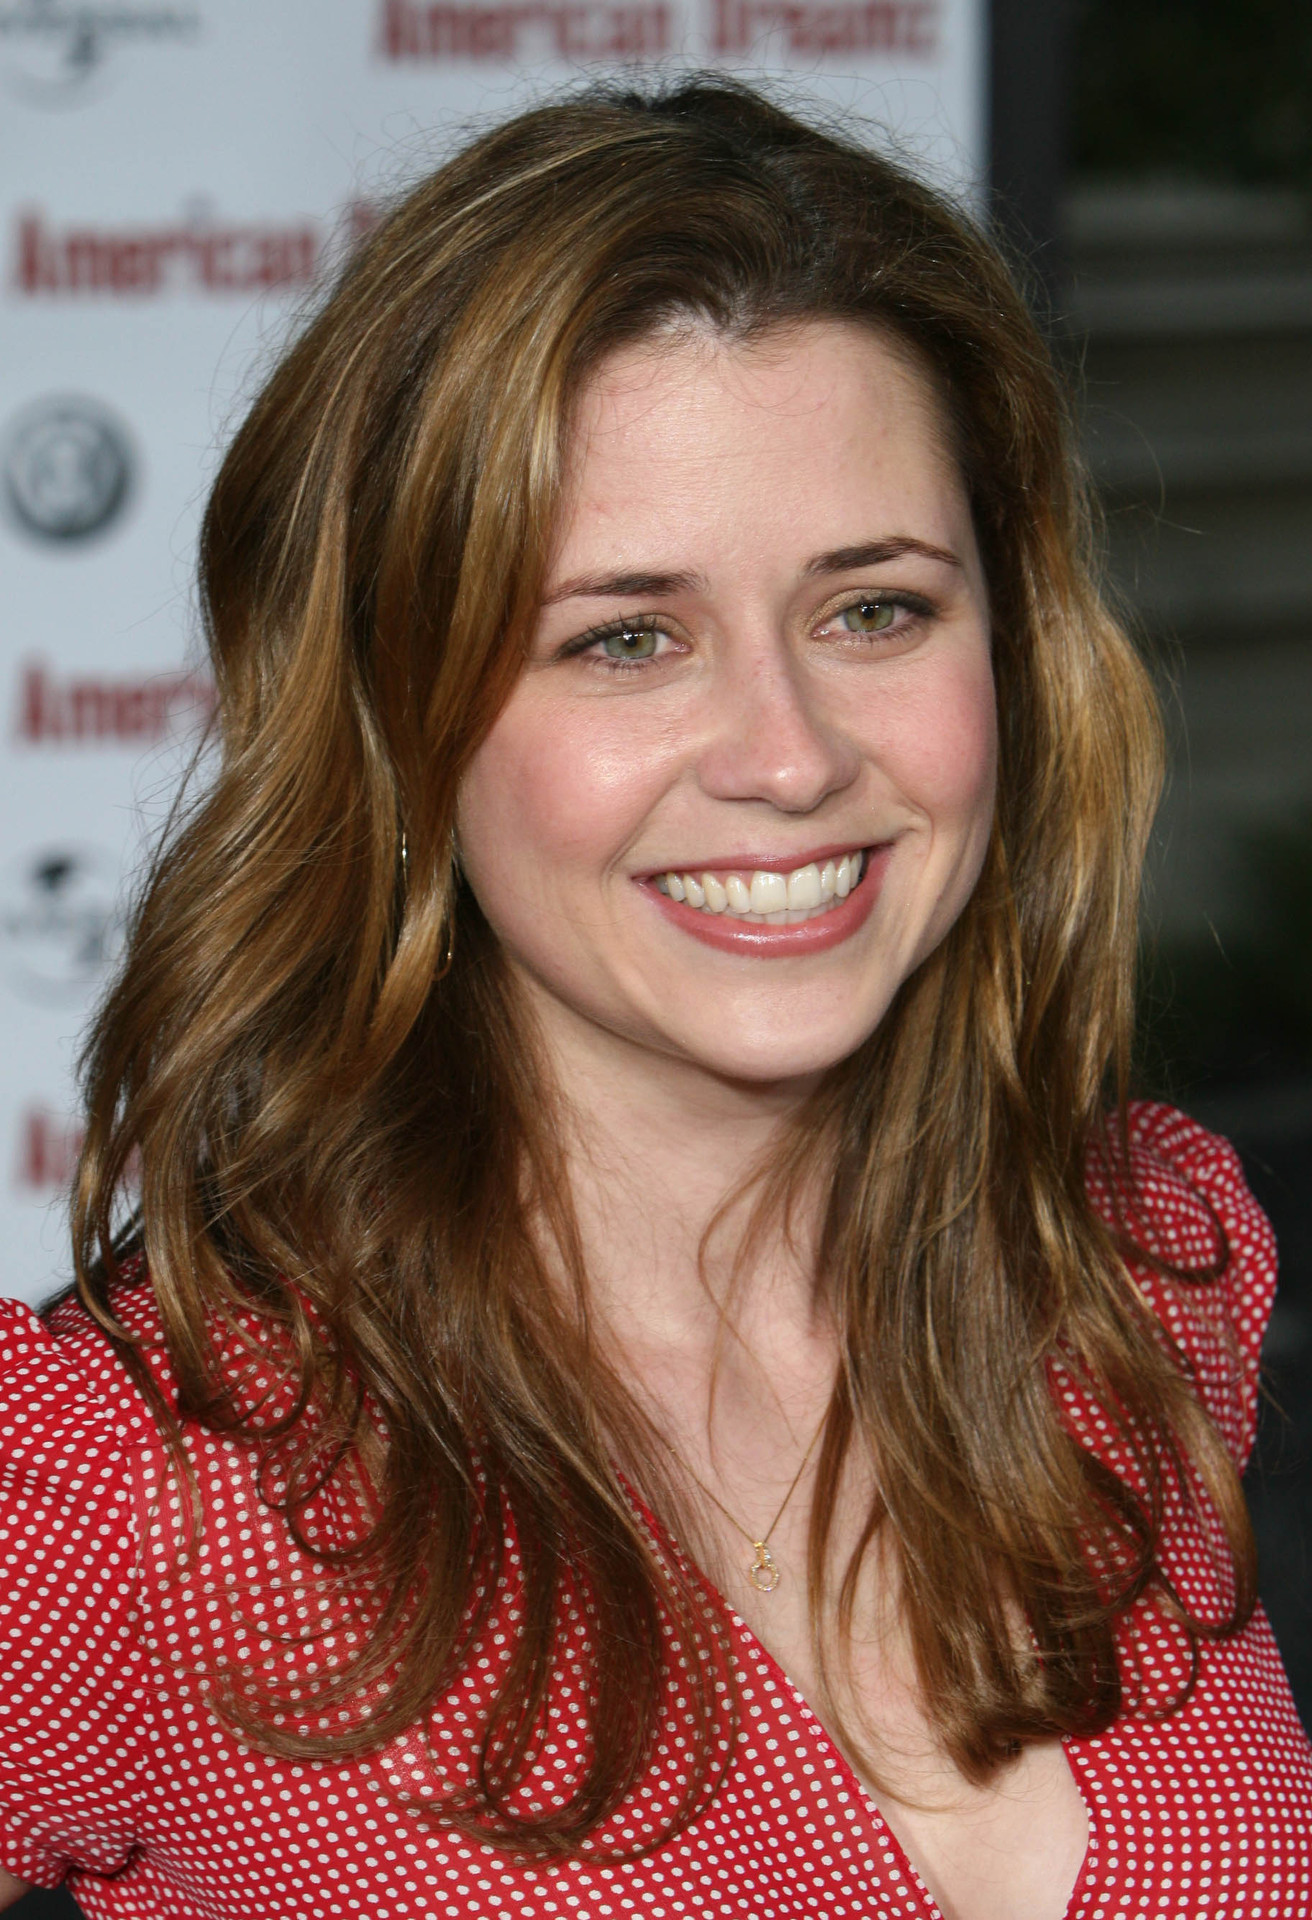 Jenna Fischer earned a unknown million dollar salary - leaving the net worth at 15 million in 2018